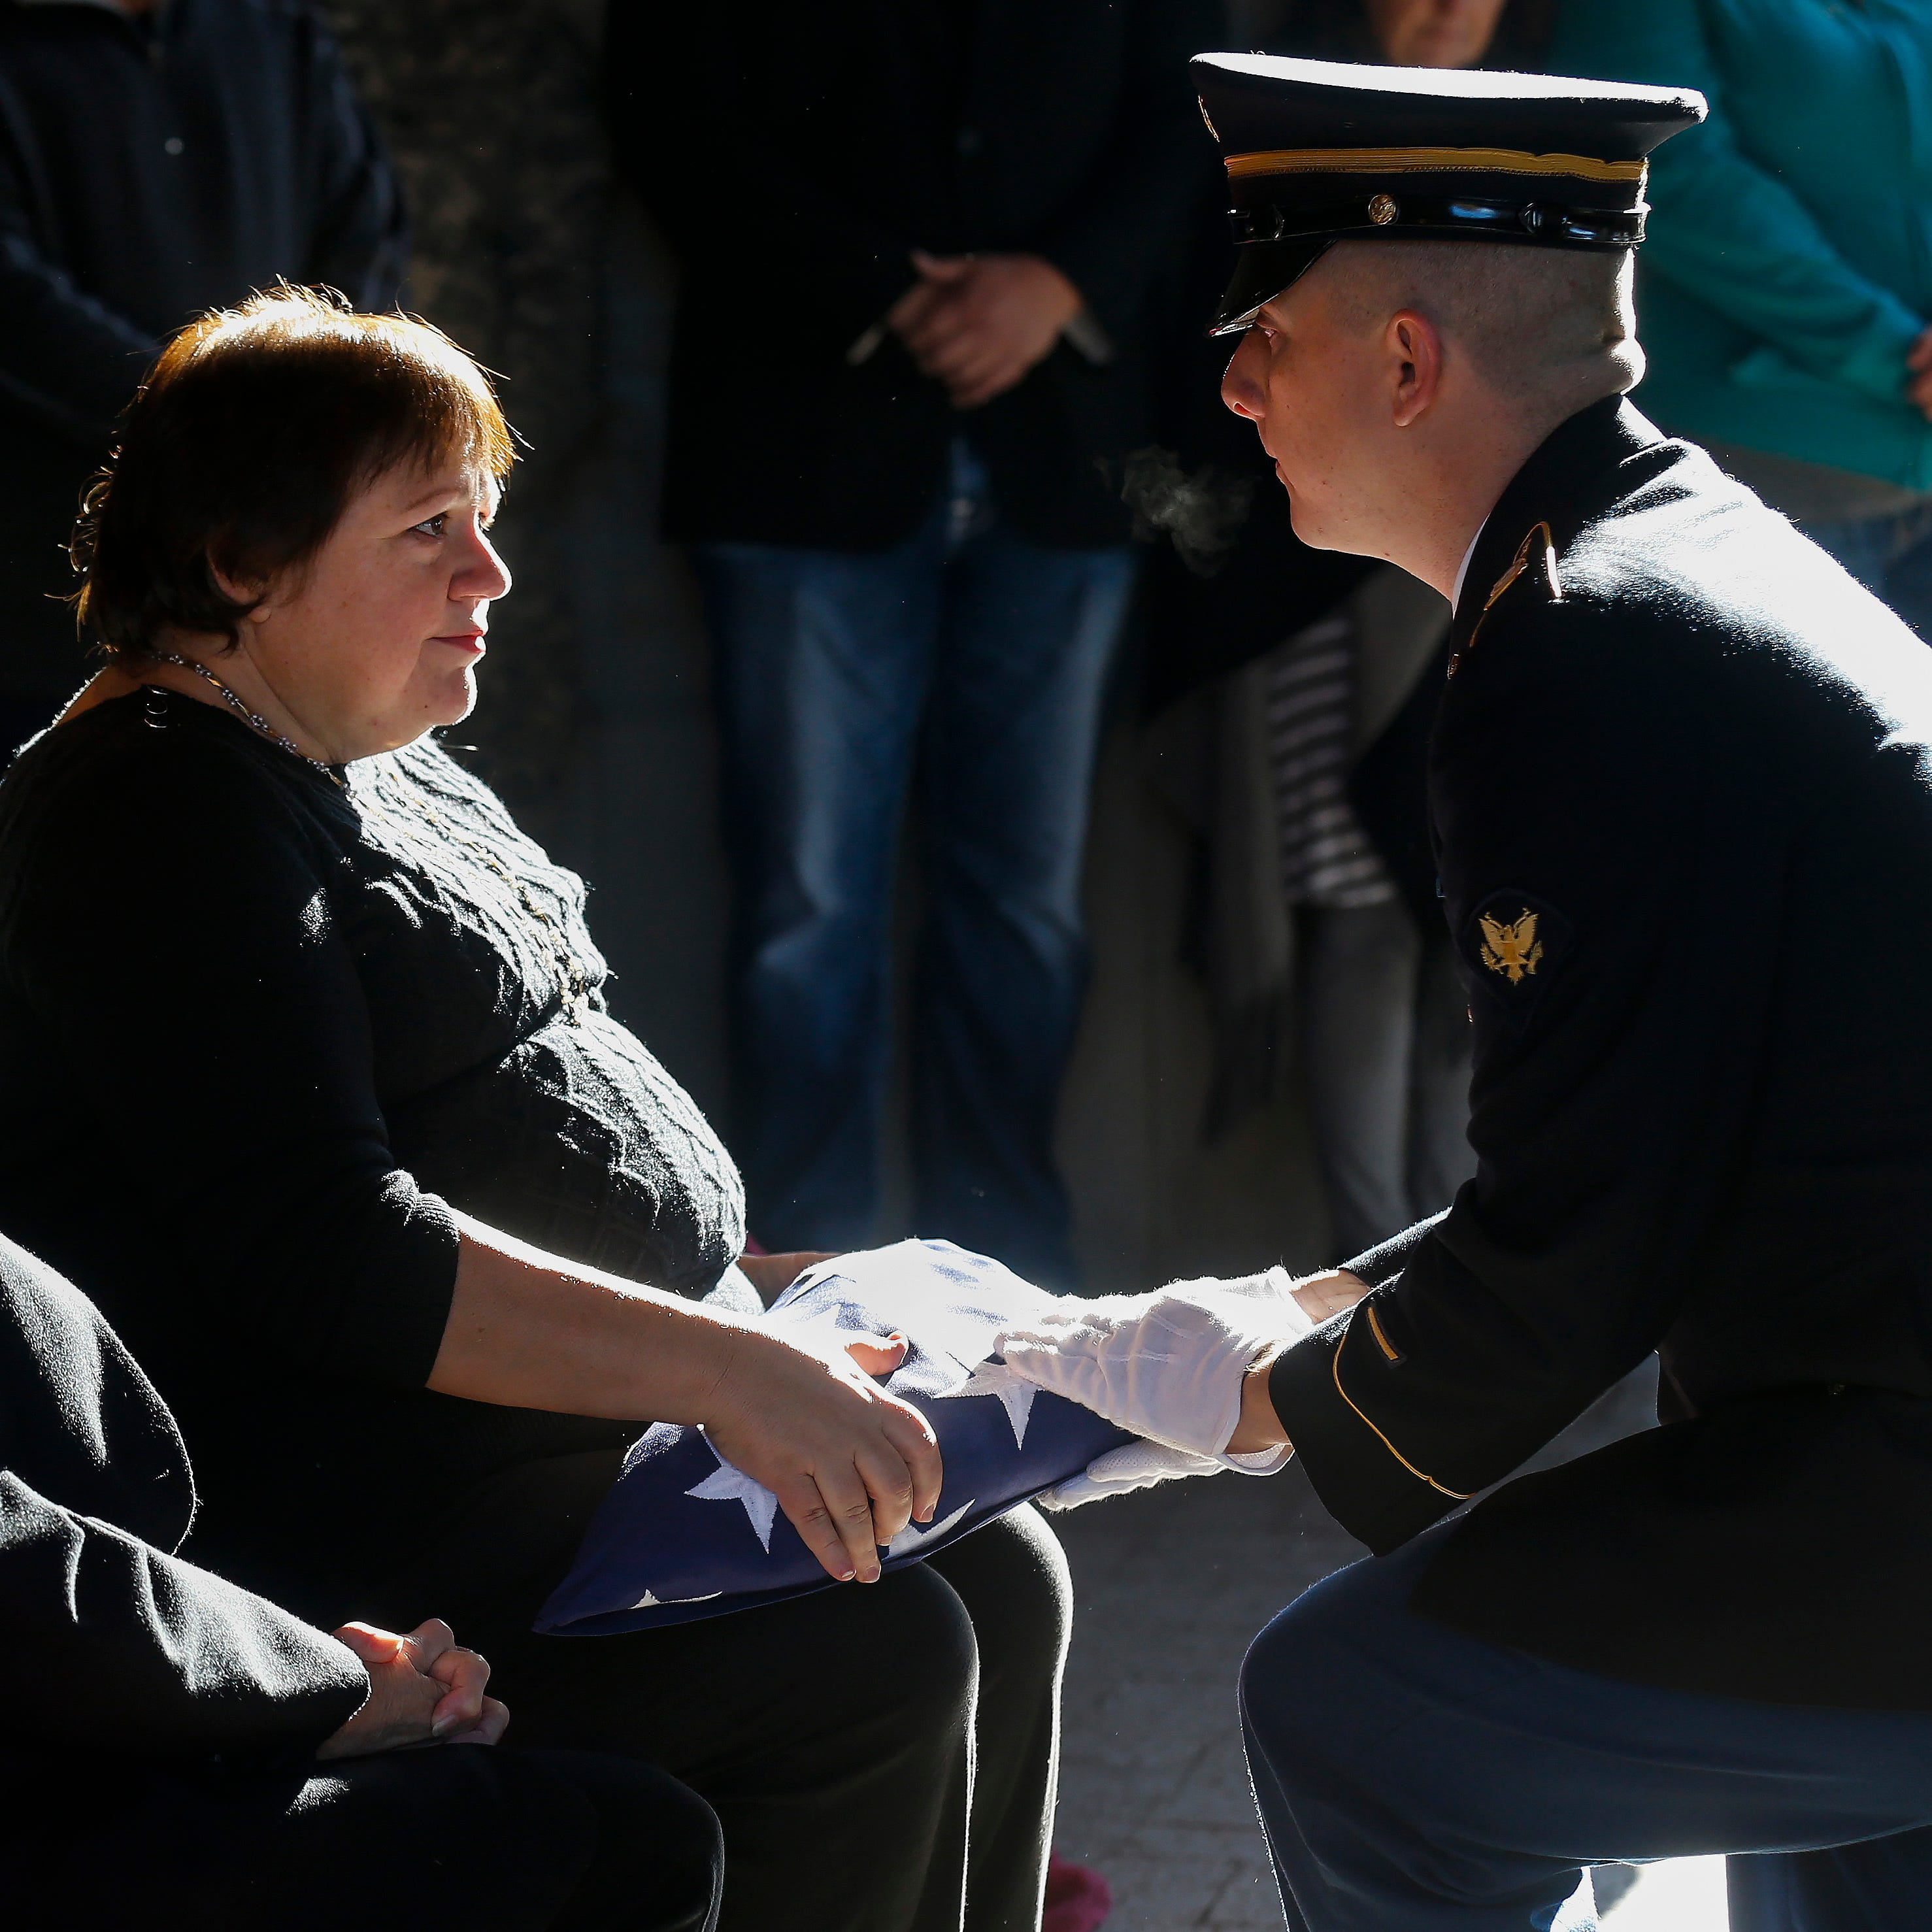 On behalf of a grateful nation, Spc.  Nathan Smith, a member of the Missouri National Guard, presents the U.S. flag to Annajean Shields during the funeral of Army veteran Michael Hiers at the Missouri Veterans Cemetery on Friday, Nov. 16, 2018.